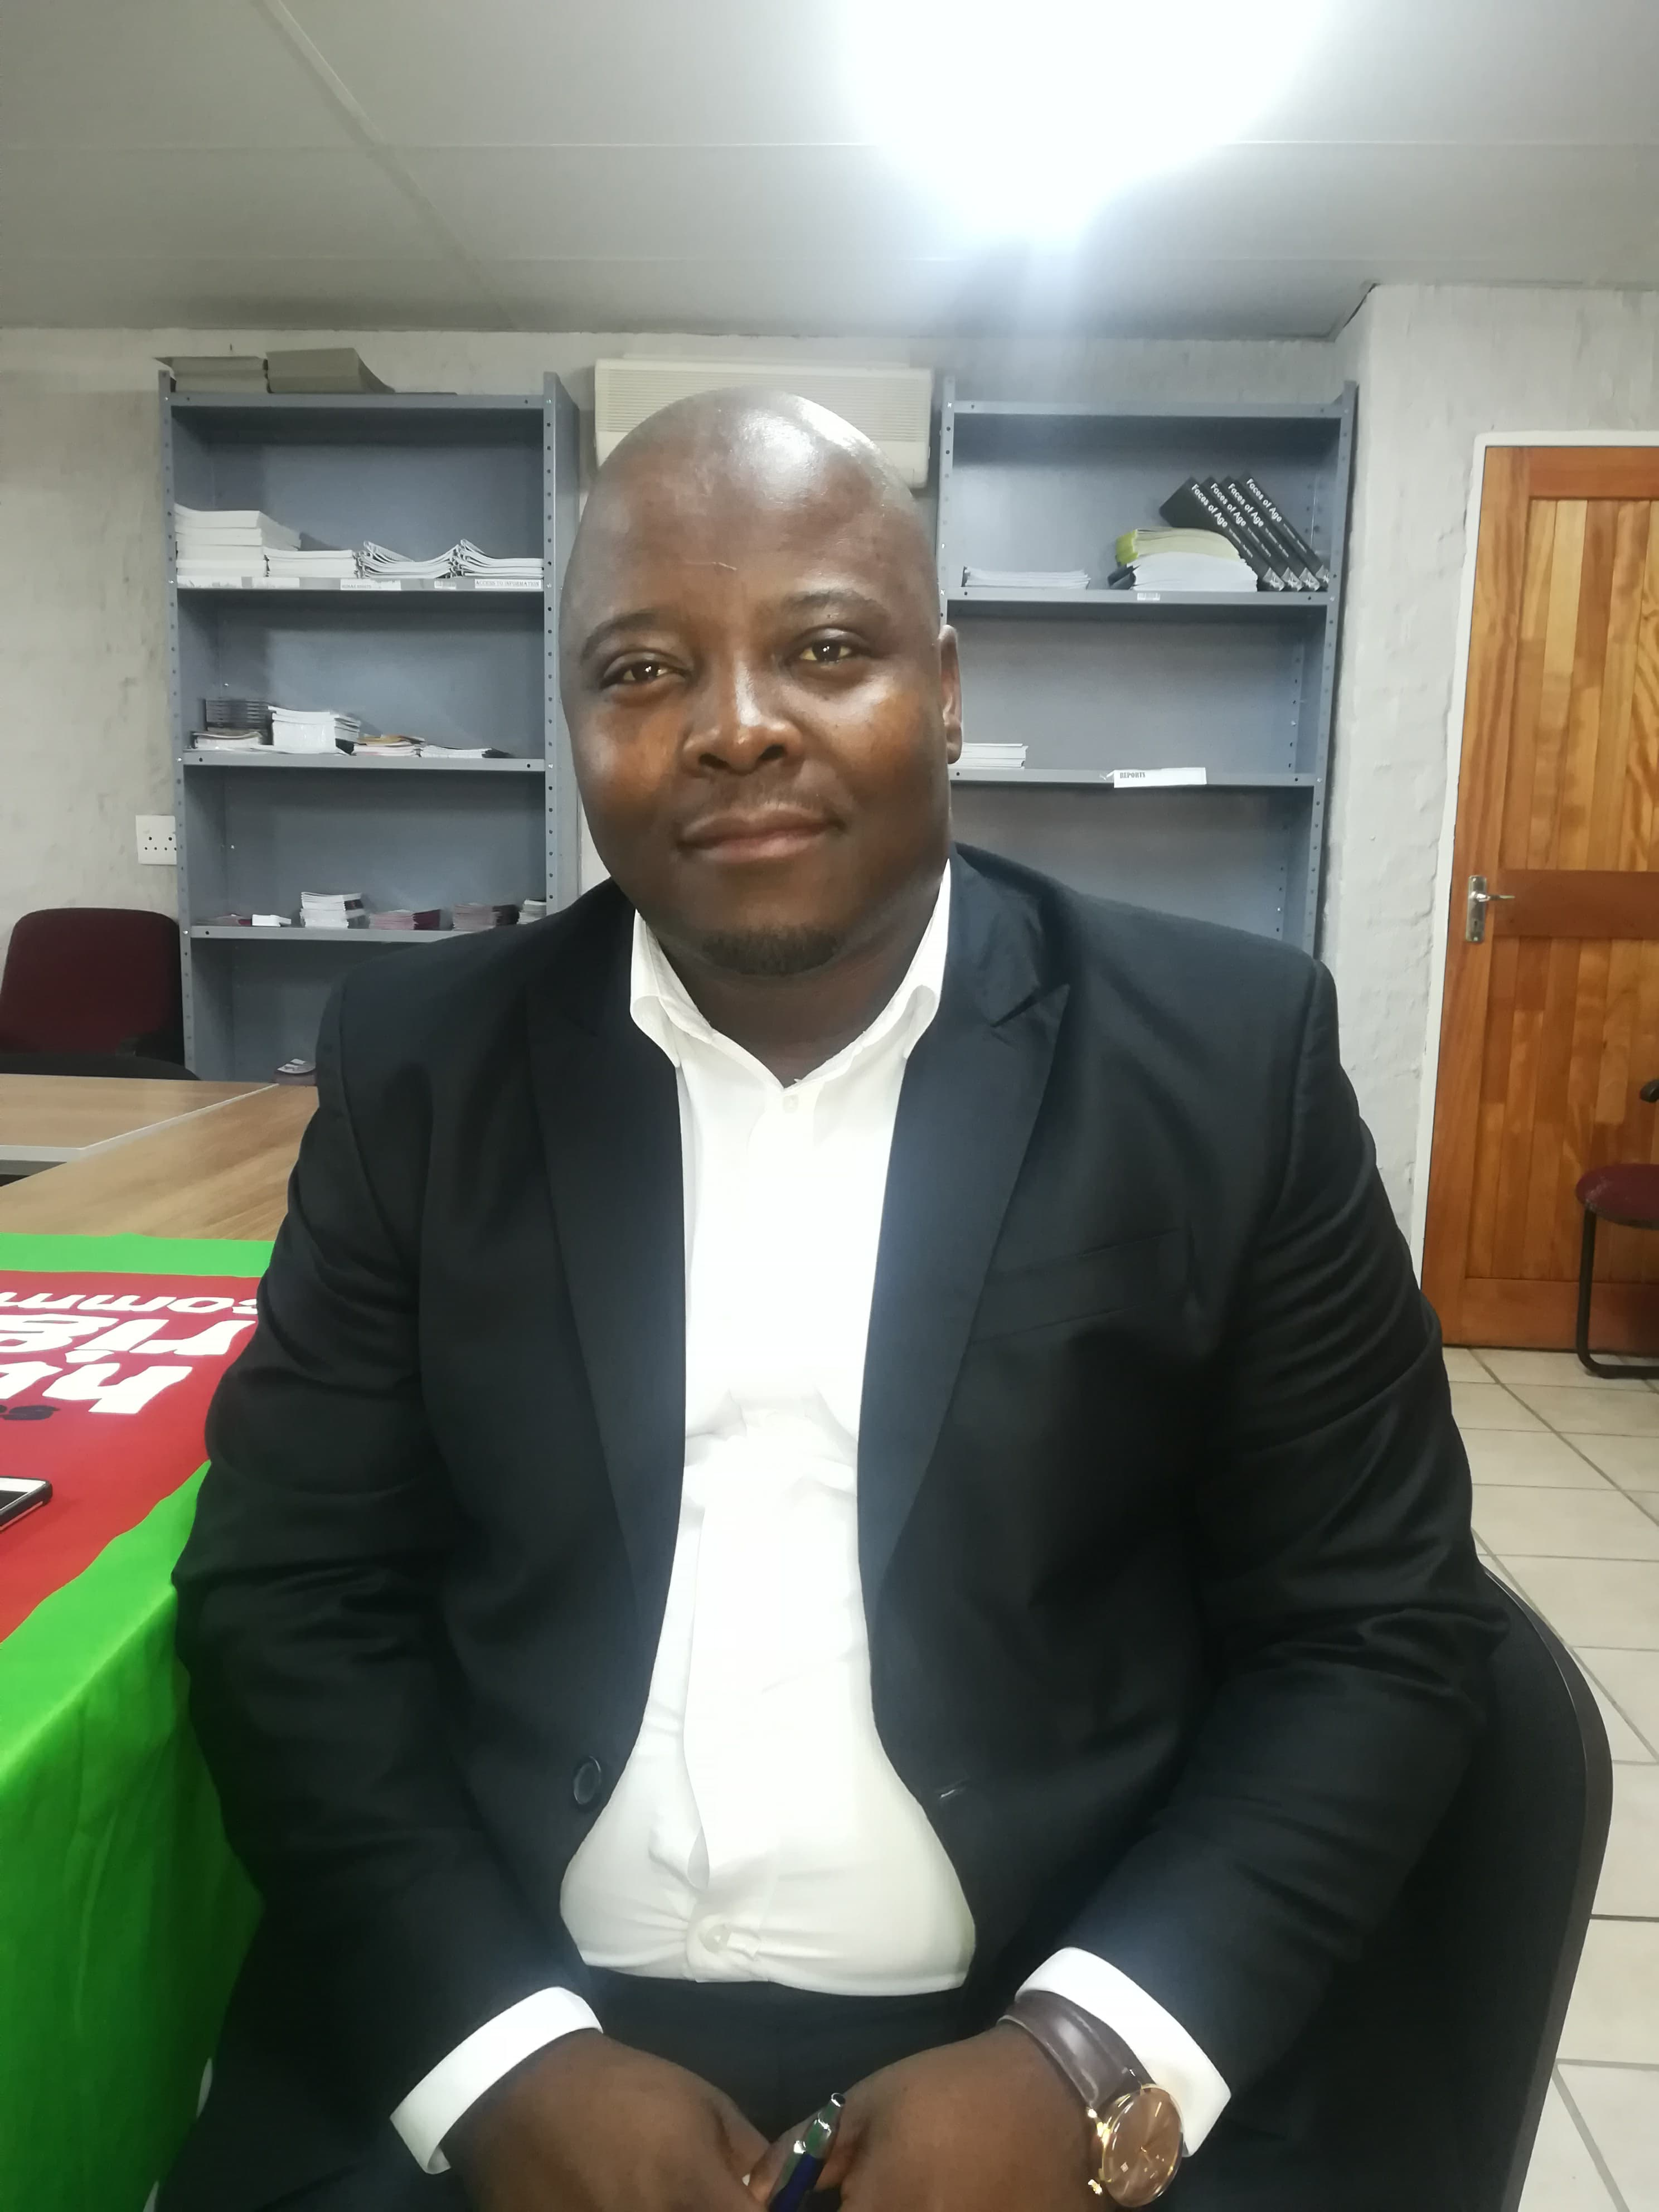 Provincial Manager at the Free State South African Human Rights Commission,  Thabang Kheswa